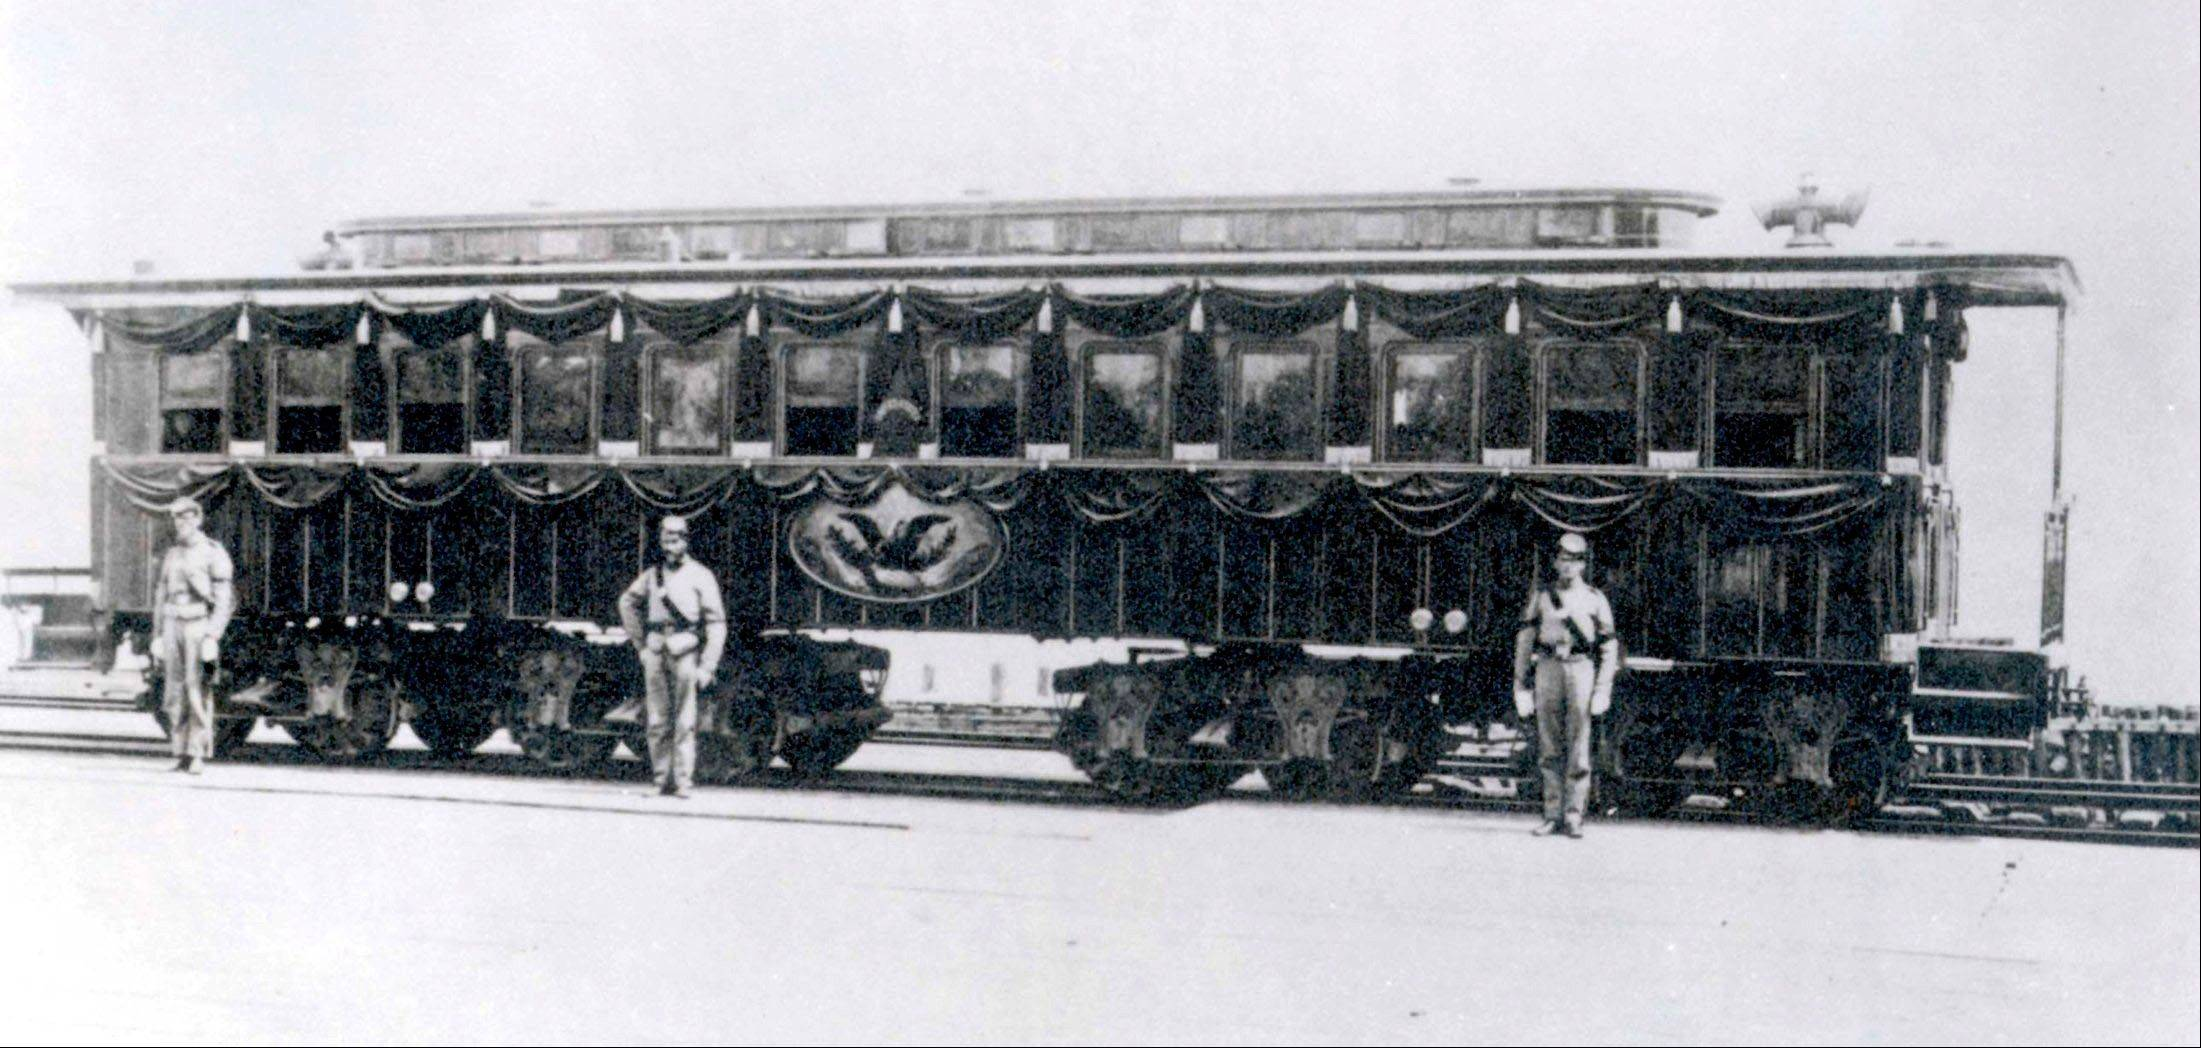 This undated photo shows the Lincoln funeral train that carried Abraham Lincoln's body across the country after his death.